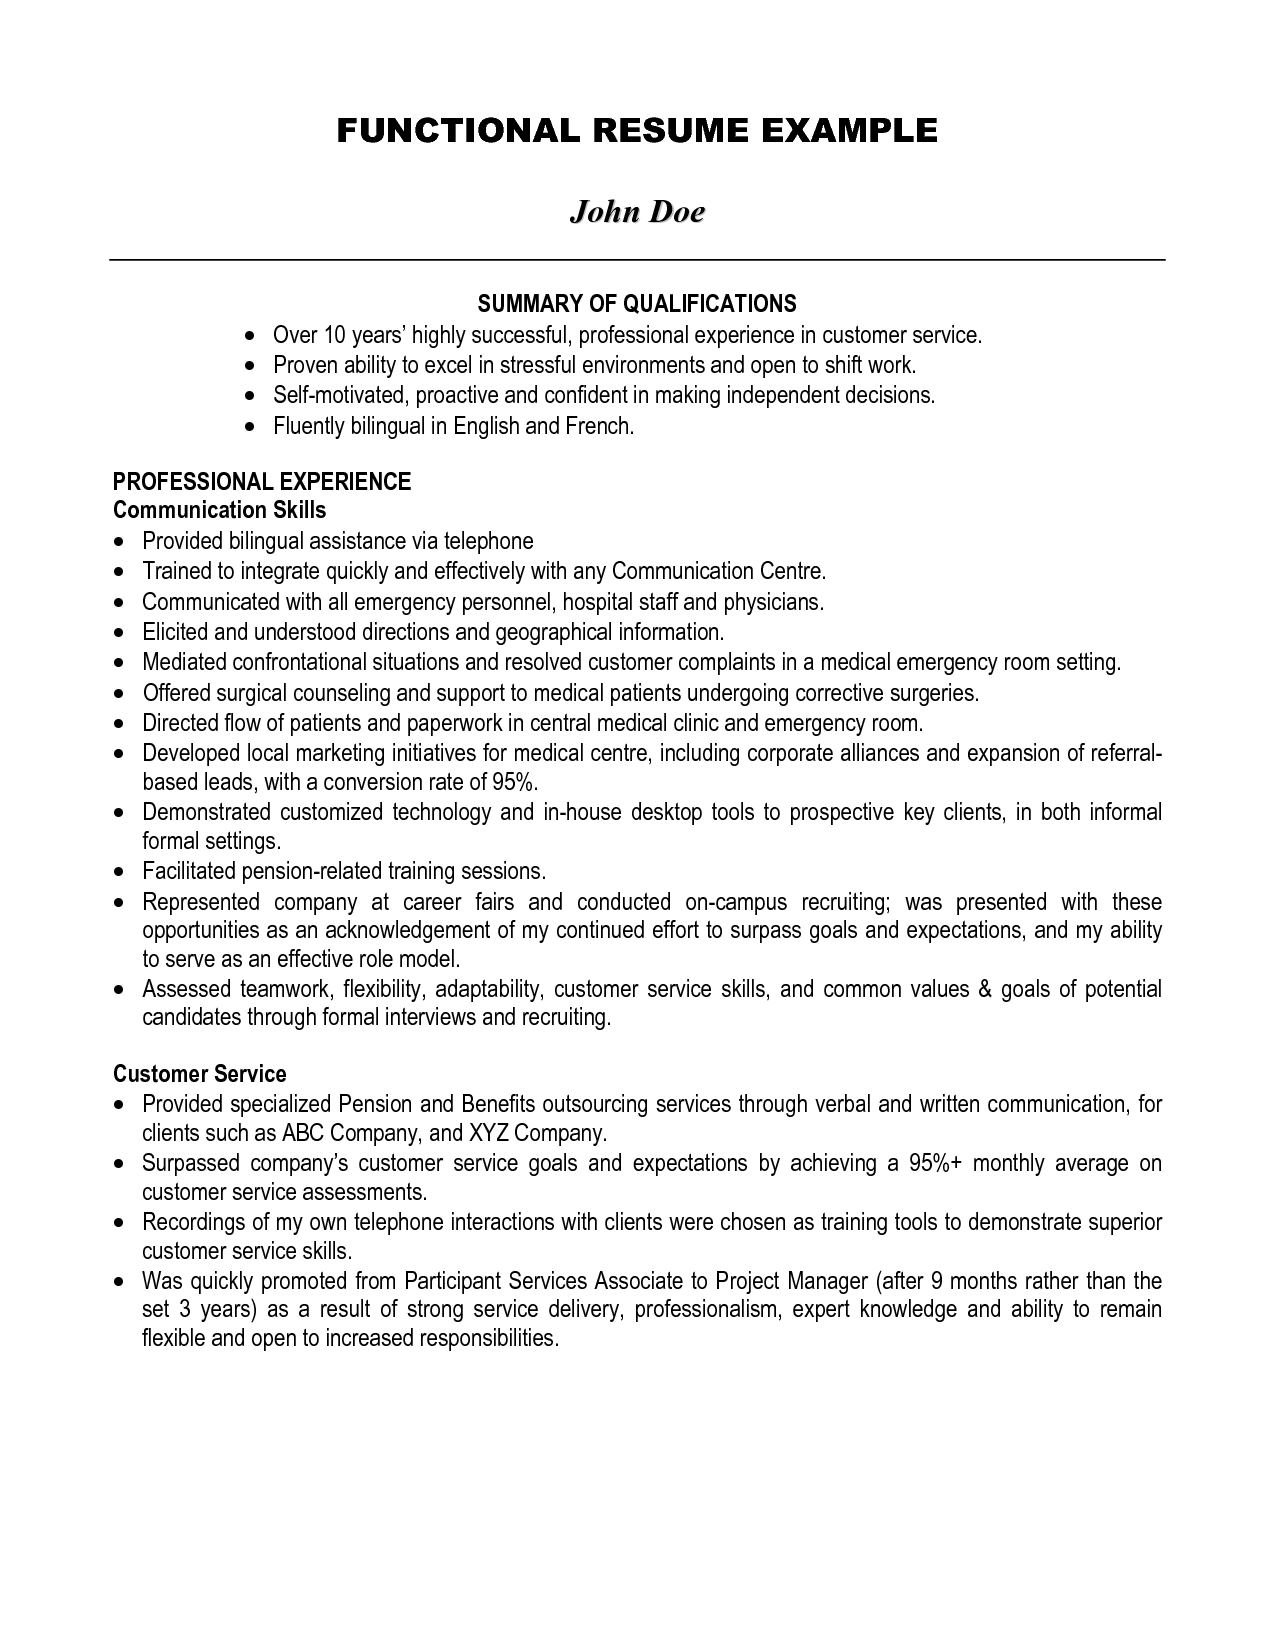 Executive Summary Resume Samples Example And Get Ideas Create Your